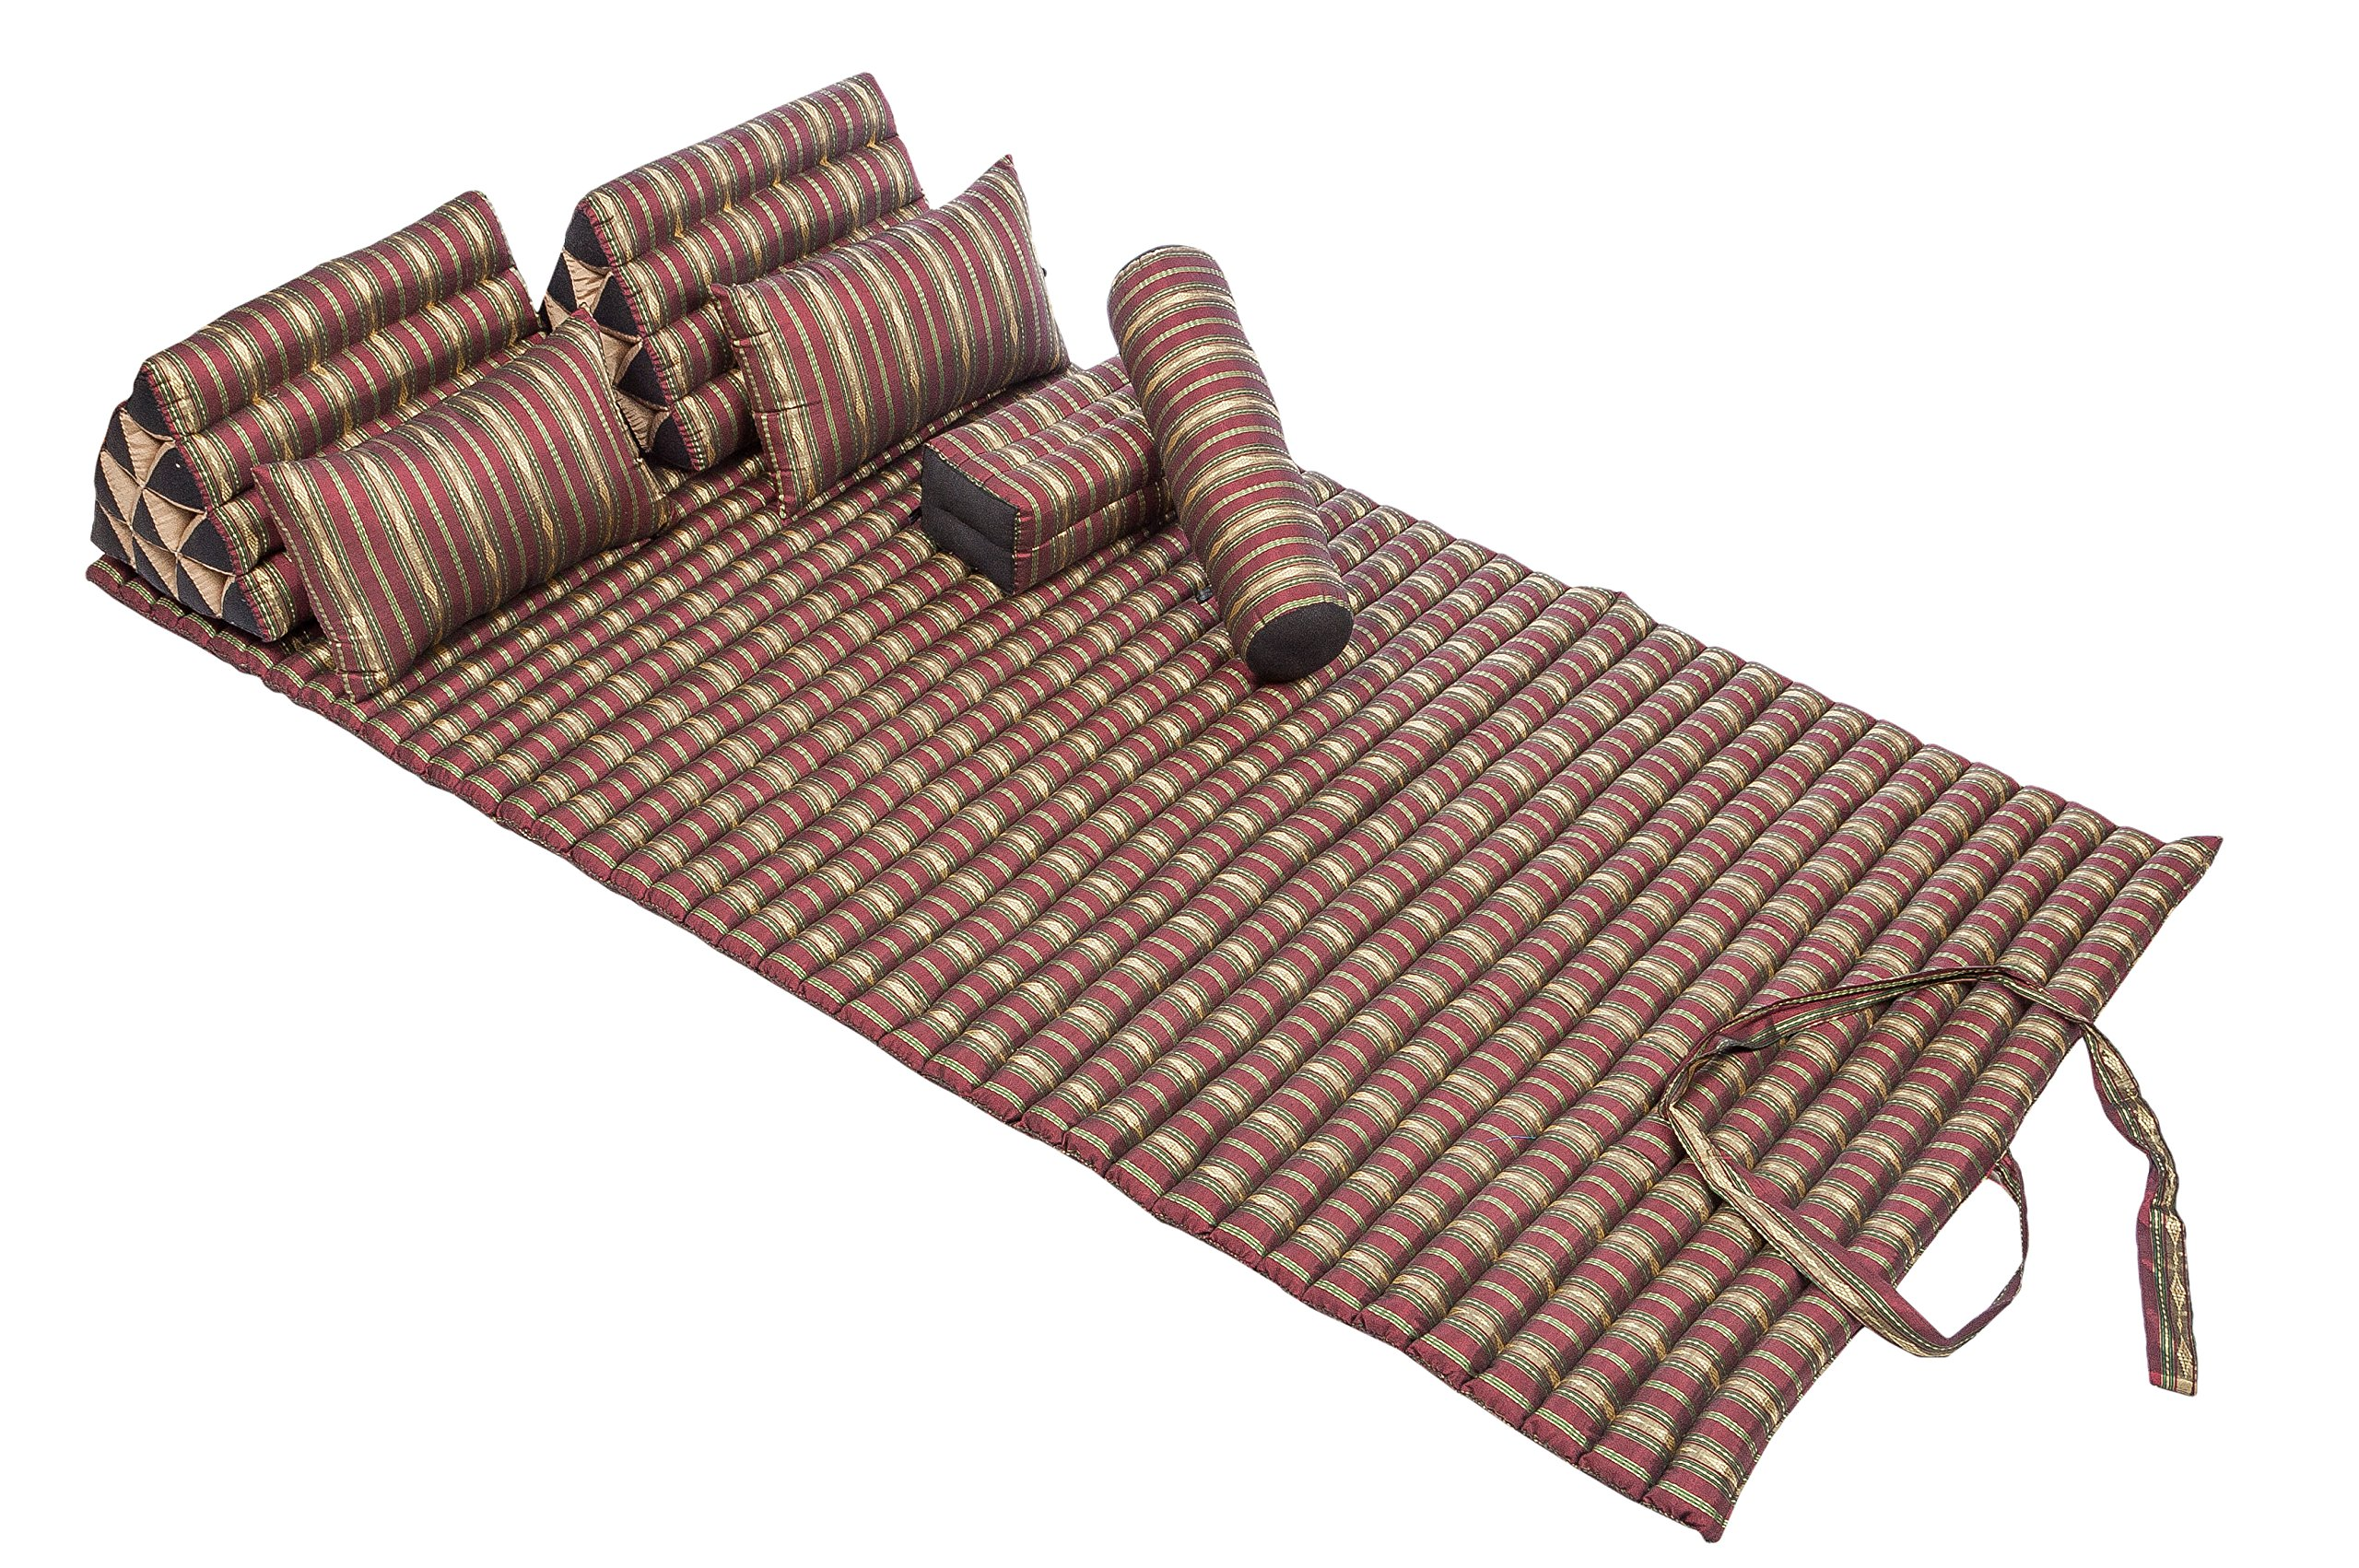 Siam Set: Kapok Mat + 2 Triangles + 2 Support&Throw Pillows + Pillow Block + Bolsters 100% Kapok Filling by Handelsturm